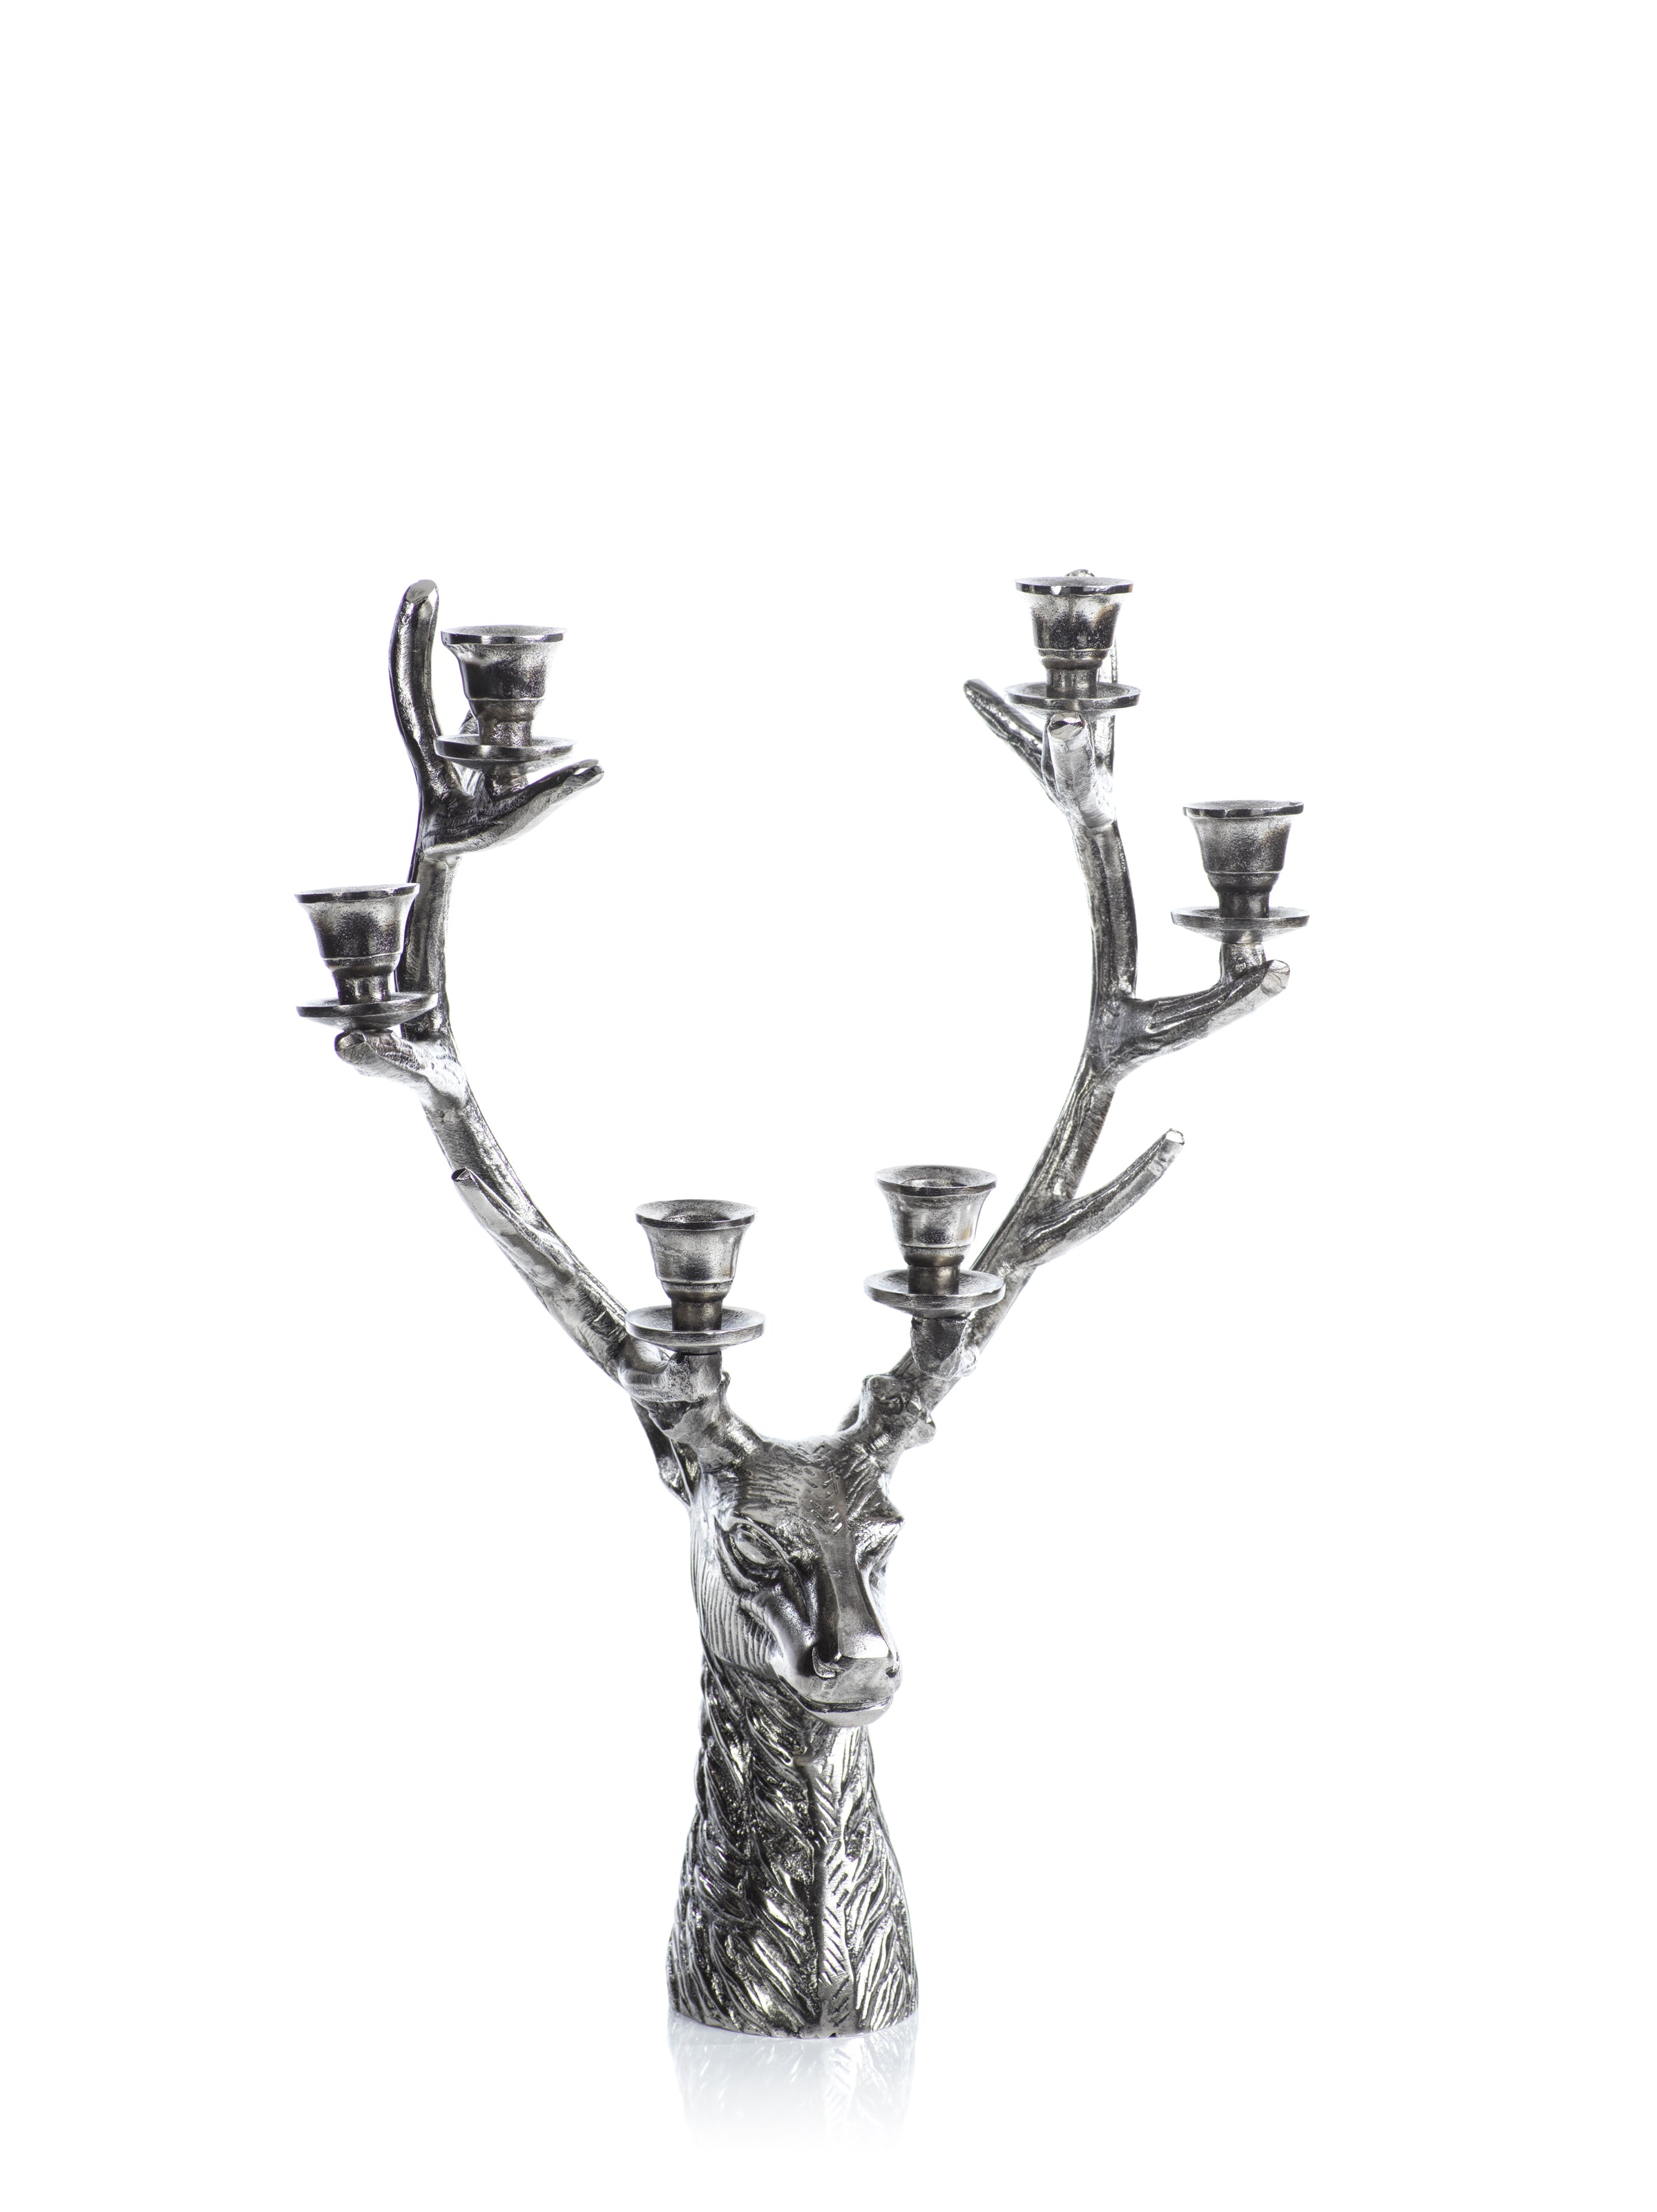 Stag Head 6 Tier Candleholder - Silver Antique - 2 Sizes - CARLYLE AVENUE